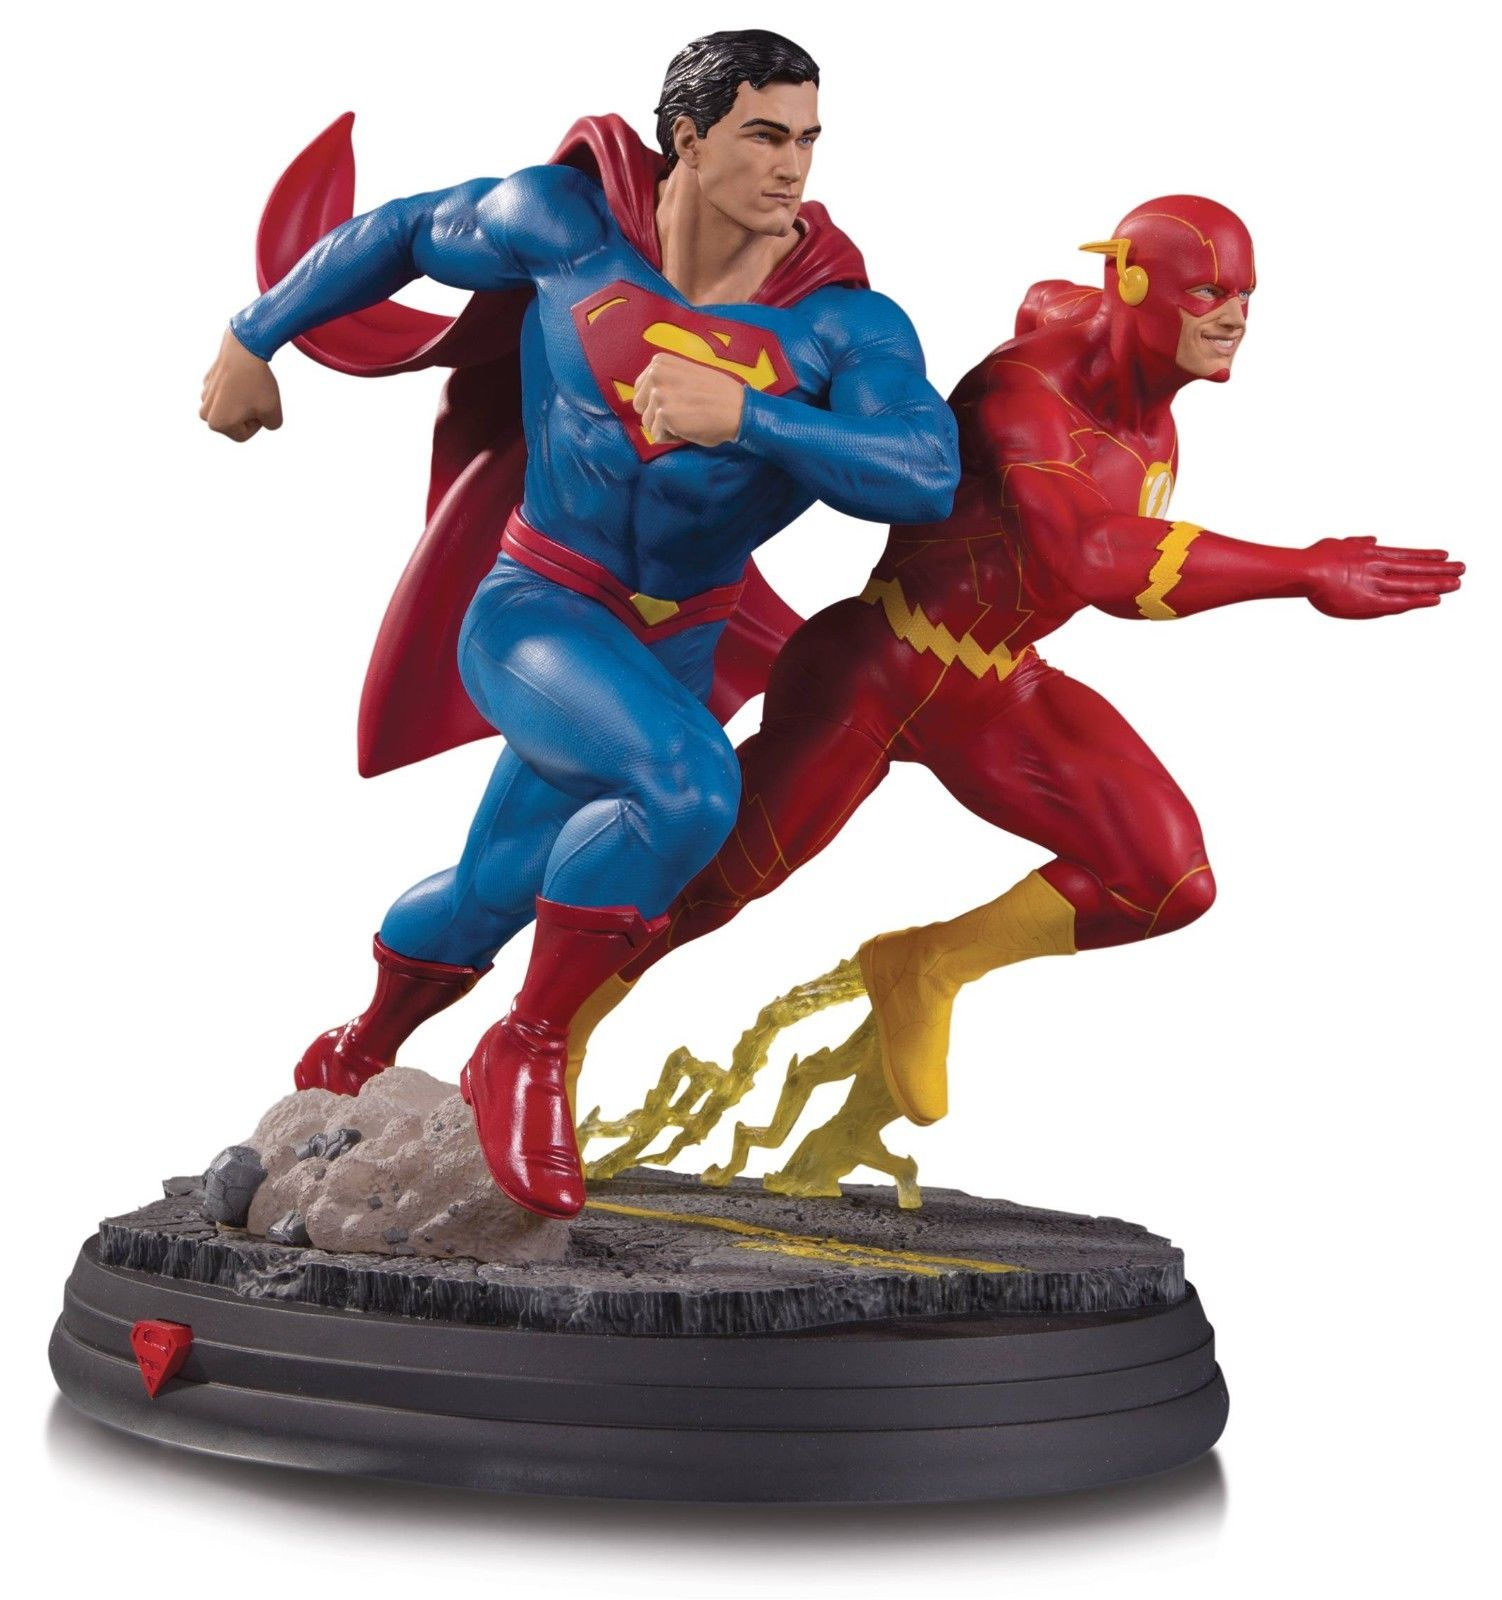 DC Gallery Superman VS Flash Racing Statue Brand New in Box Limited to 5000